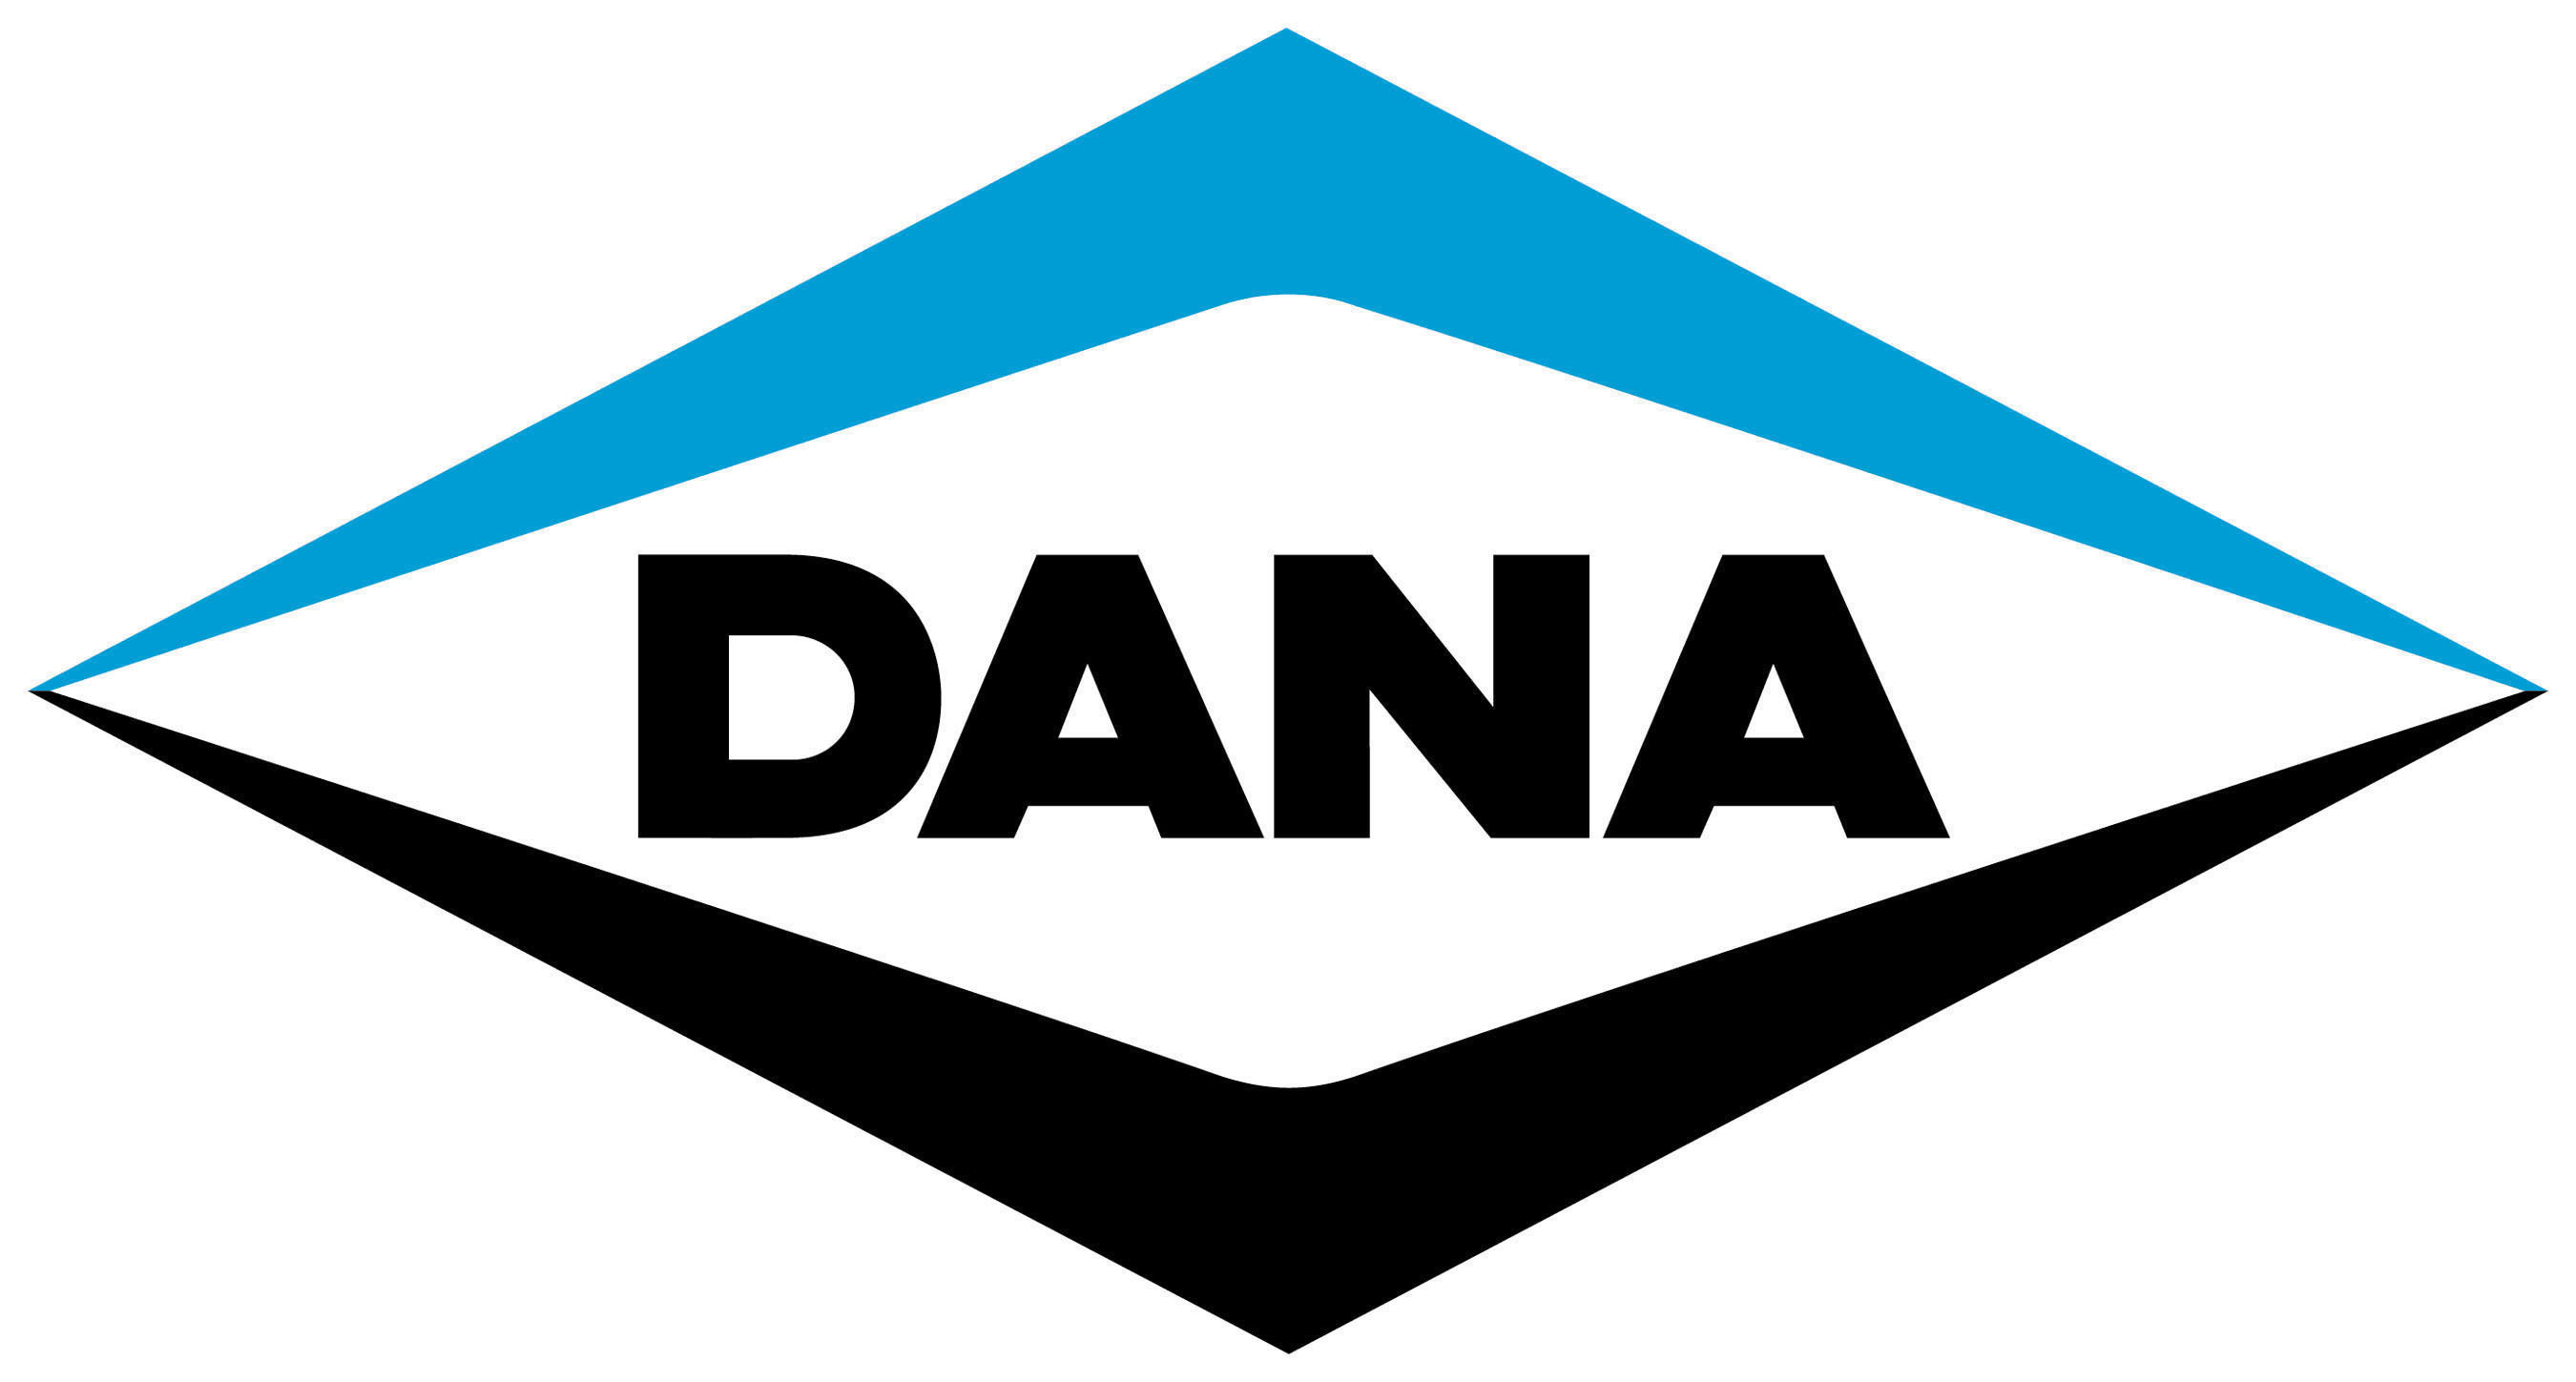 Dana Introduces New Aftermarket E-commerce Site Connecting Service Technicians with Distributors